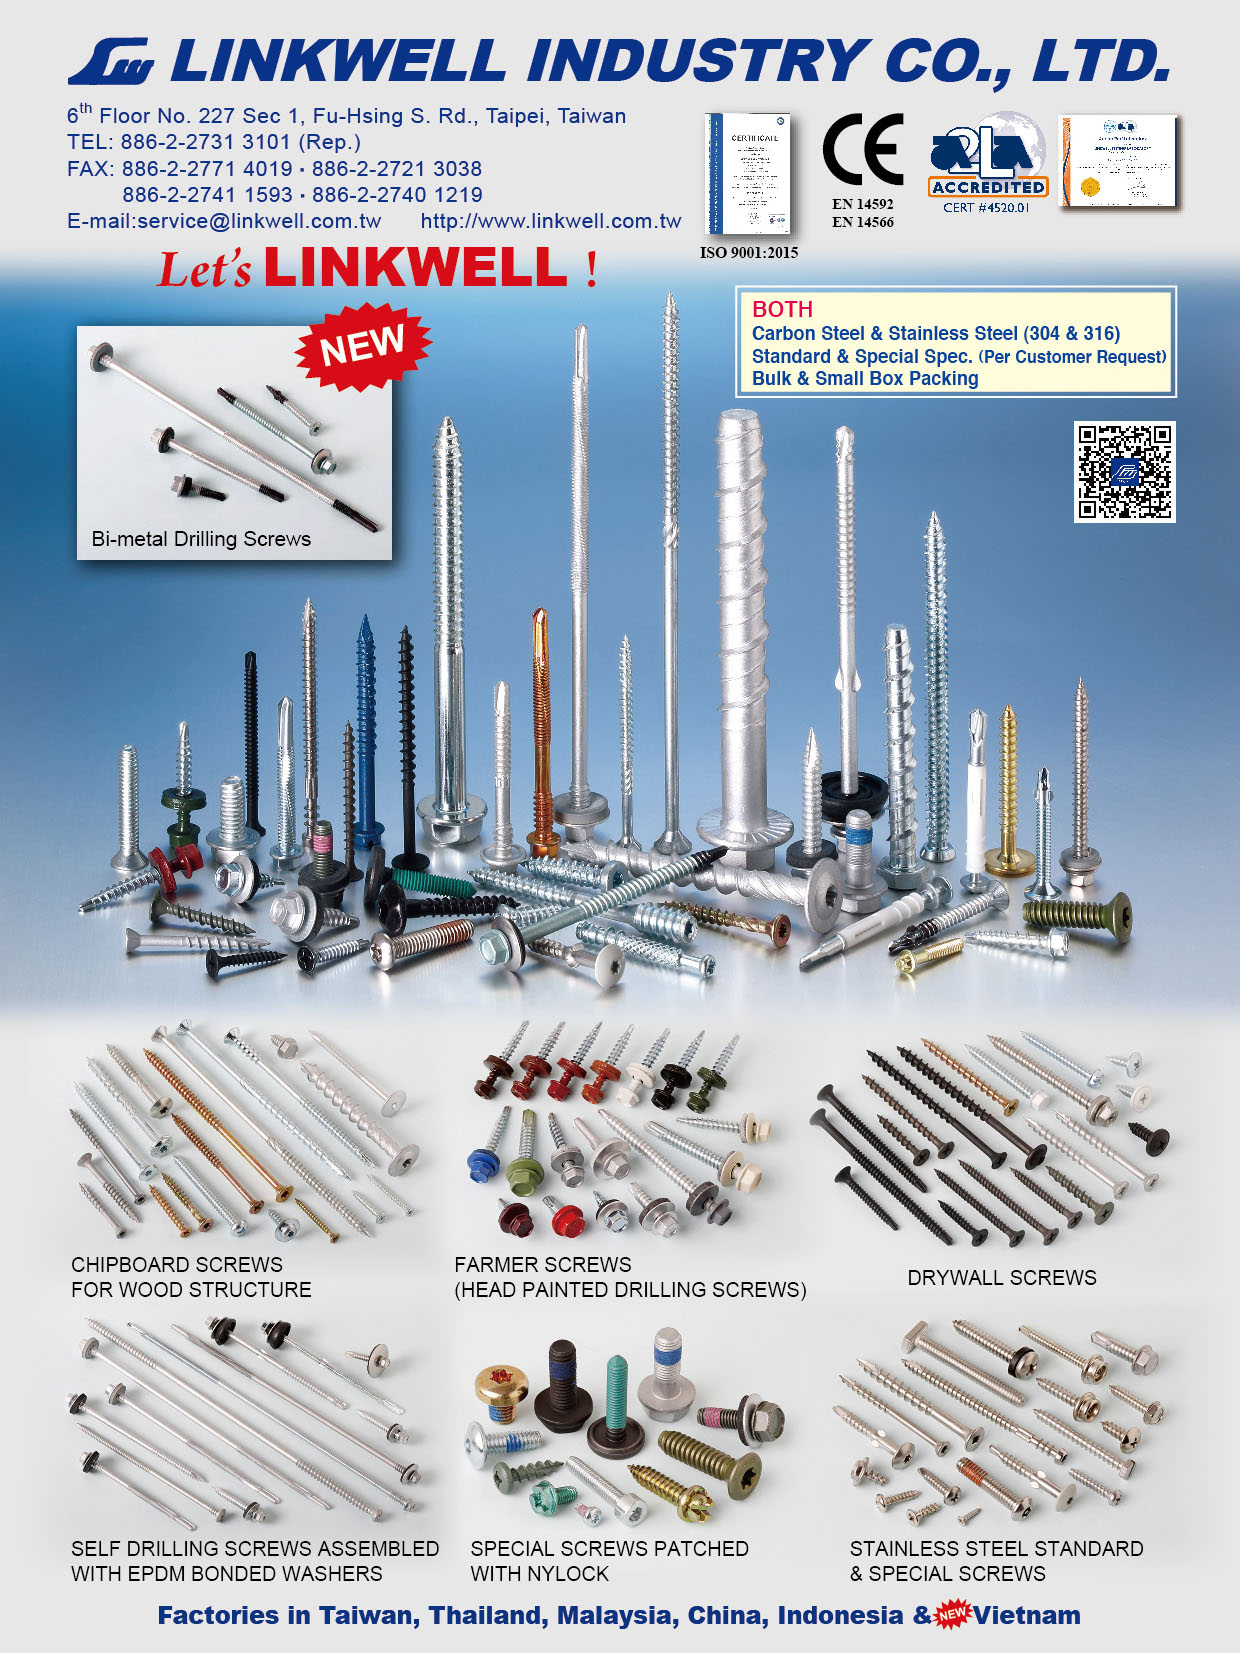 LINKWELL INDUSTRY CO., LTD. Online Catalogues